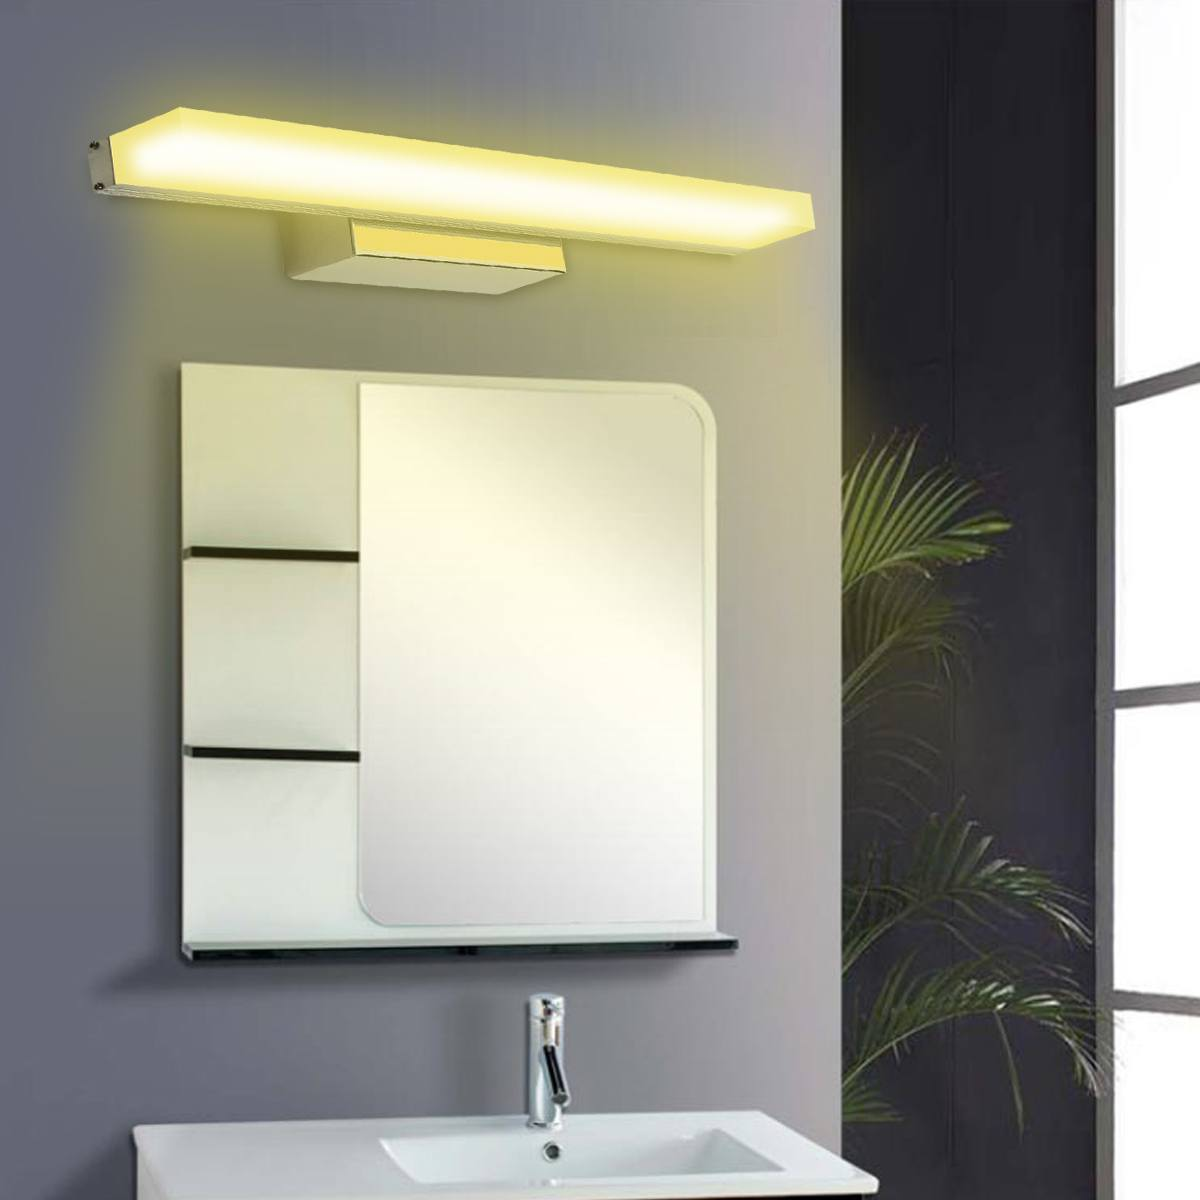 Smuxi 100cm 16W 88LED Mirror Front Lamp Morden Bathroom Toilet Vanity Wall Makeup Light Wall Lamp Stainless Steel 1280lm 85-265VSmuxi 100cm 16W 88LED Mirror Front Lamp Morden Bathroom Toilet Vanity Wall Makeup Light Wall Lamp Stainless Steel 1280lm 85-265V